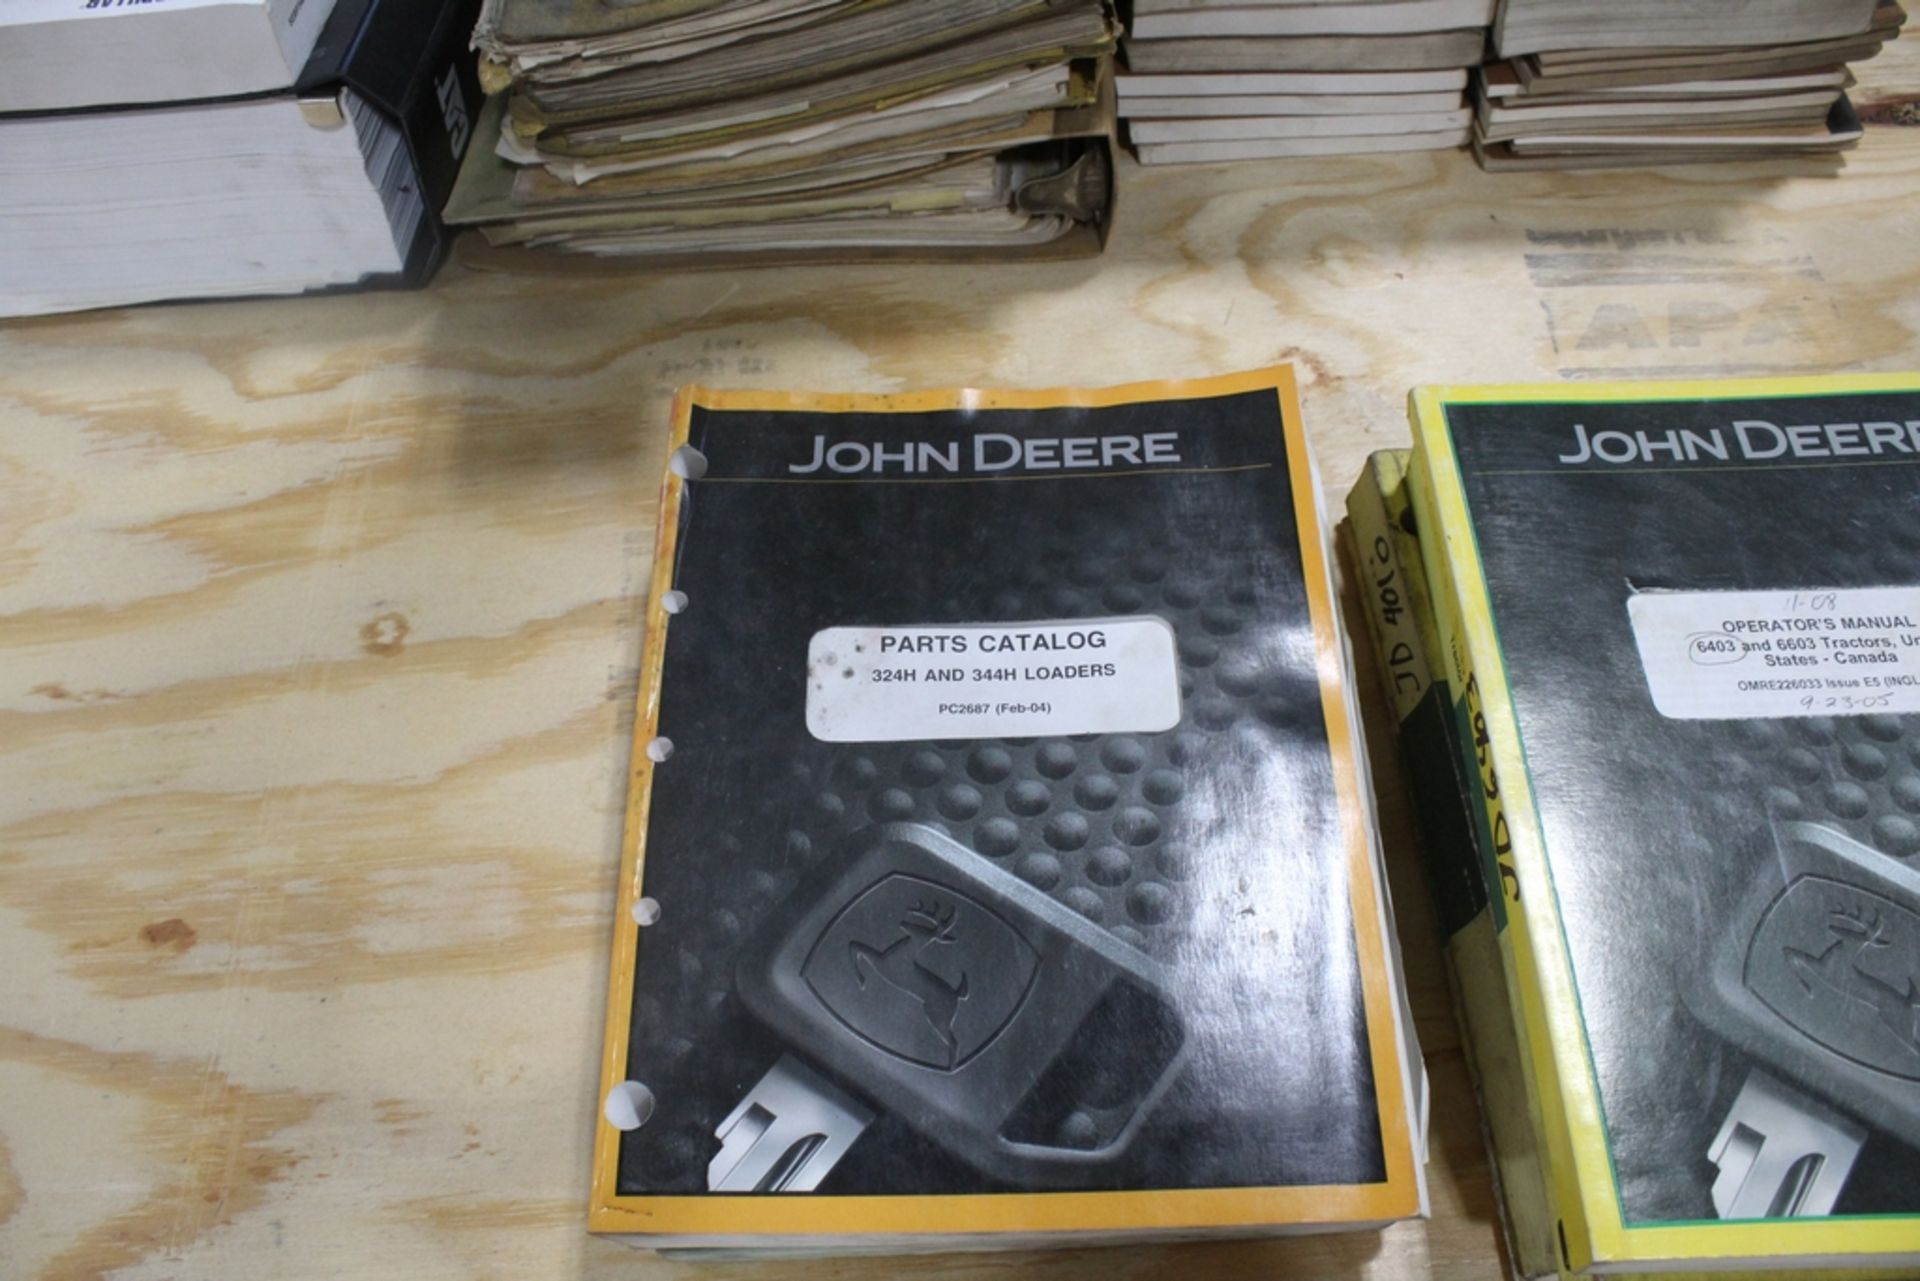 ASSORTED JOHN DEERE AND VOLVO SERVICE MANUALS - Image 2 of 3